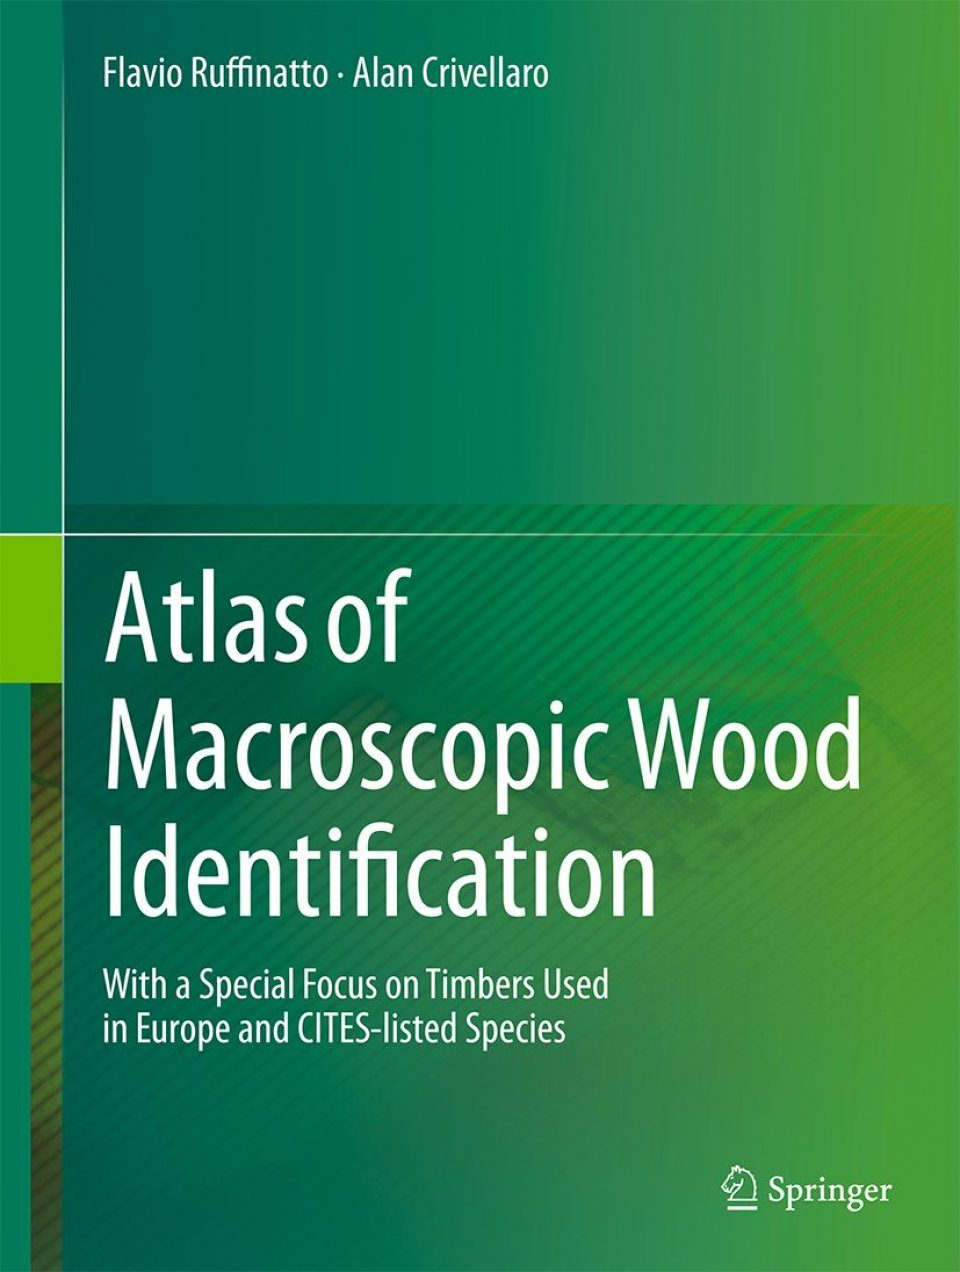 Atlas of Macroscopic Wood Identification